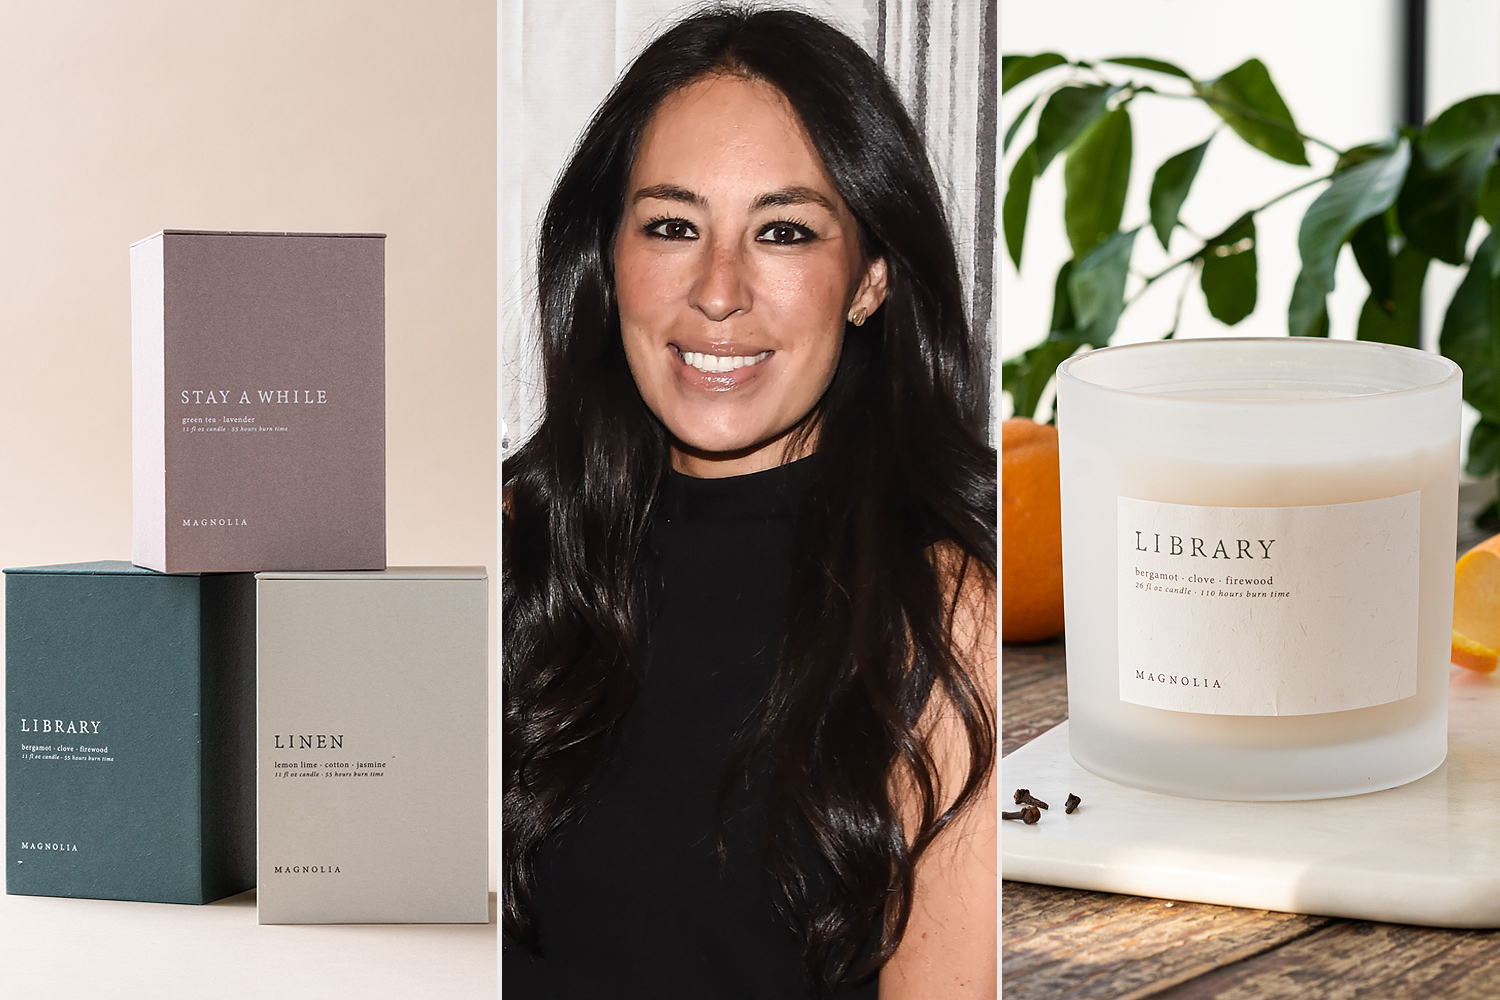 Joanna Gaines candles